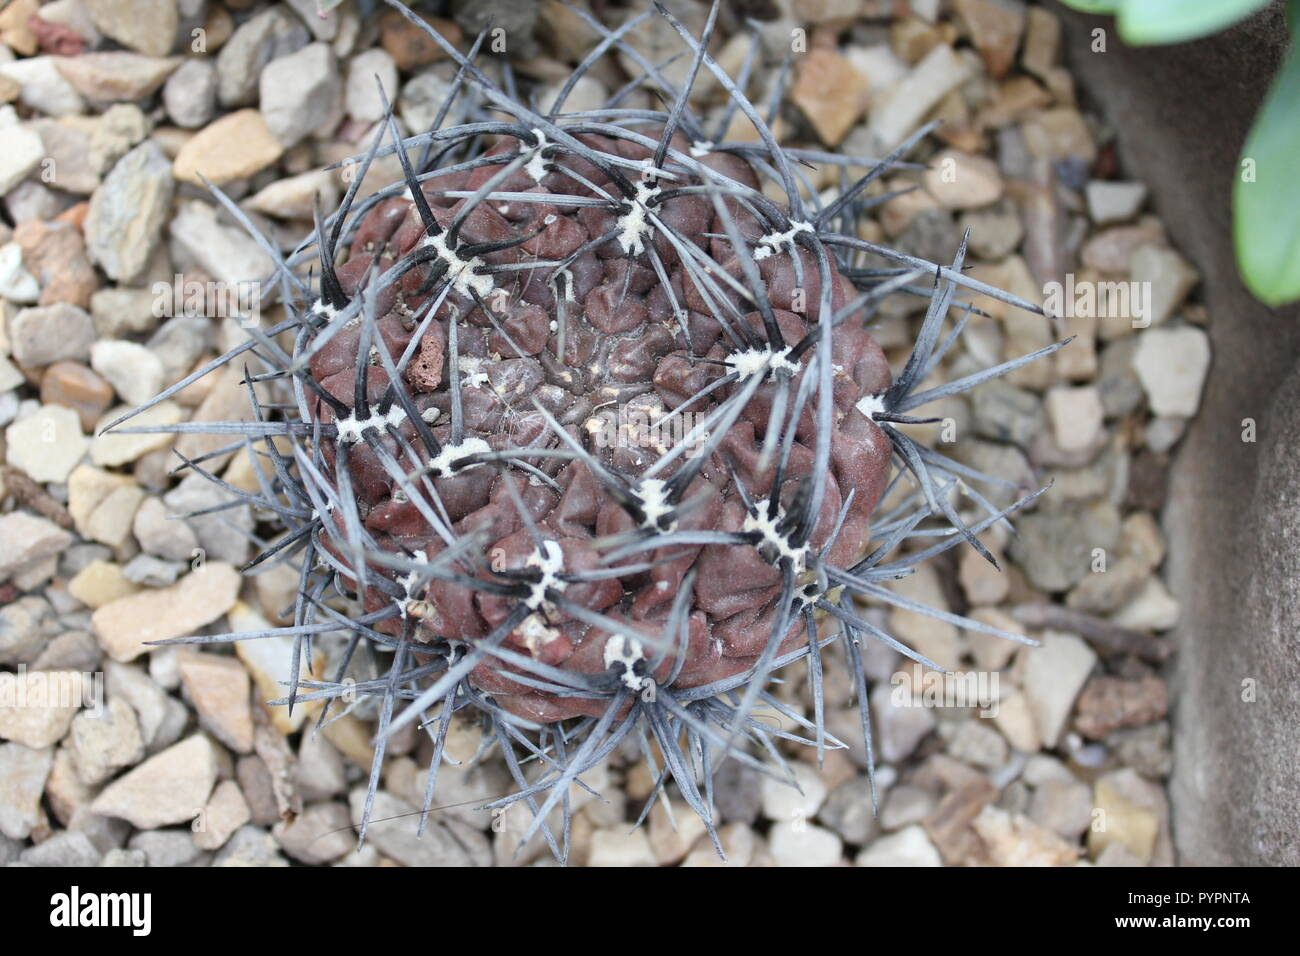 Desert plant red cactus with gray spines at the Garfield Park Conservatory in Chicago, Illinois, USA. - Stock Image